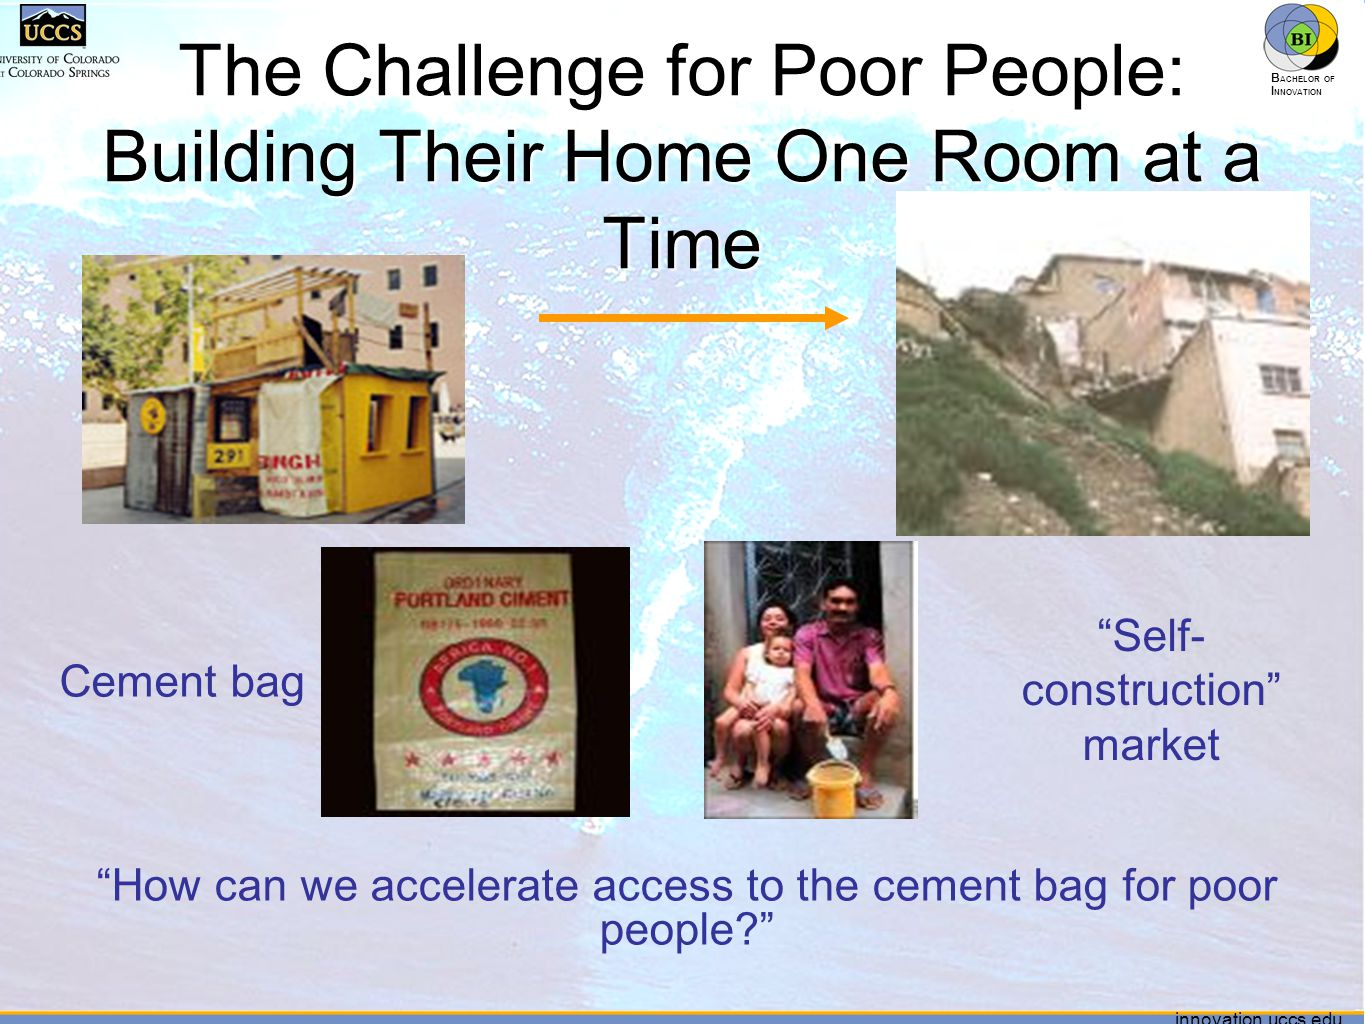 innovation.uccs.edu B ACHELOR OF I NNOVATION ™ innovation.uccs.edu B ACHELOR OF I NNOVATION ™ The Challenge for Poor People: Building Their Home One Room at a Time Cement bag Self- construction market How can we accelerate access to the cement bag for poor people?